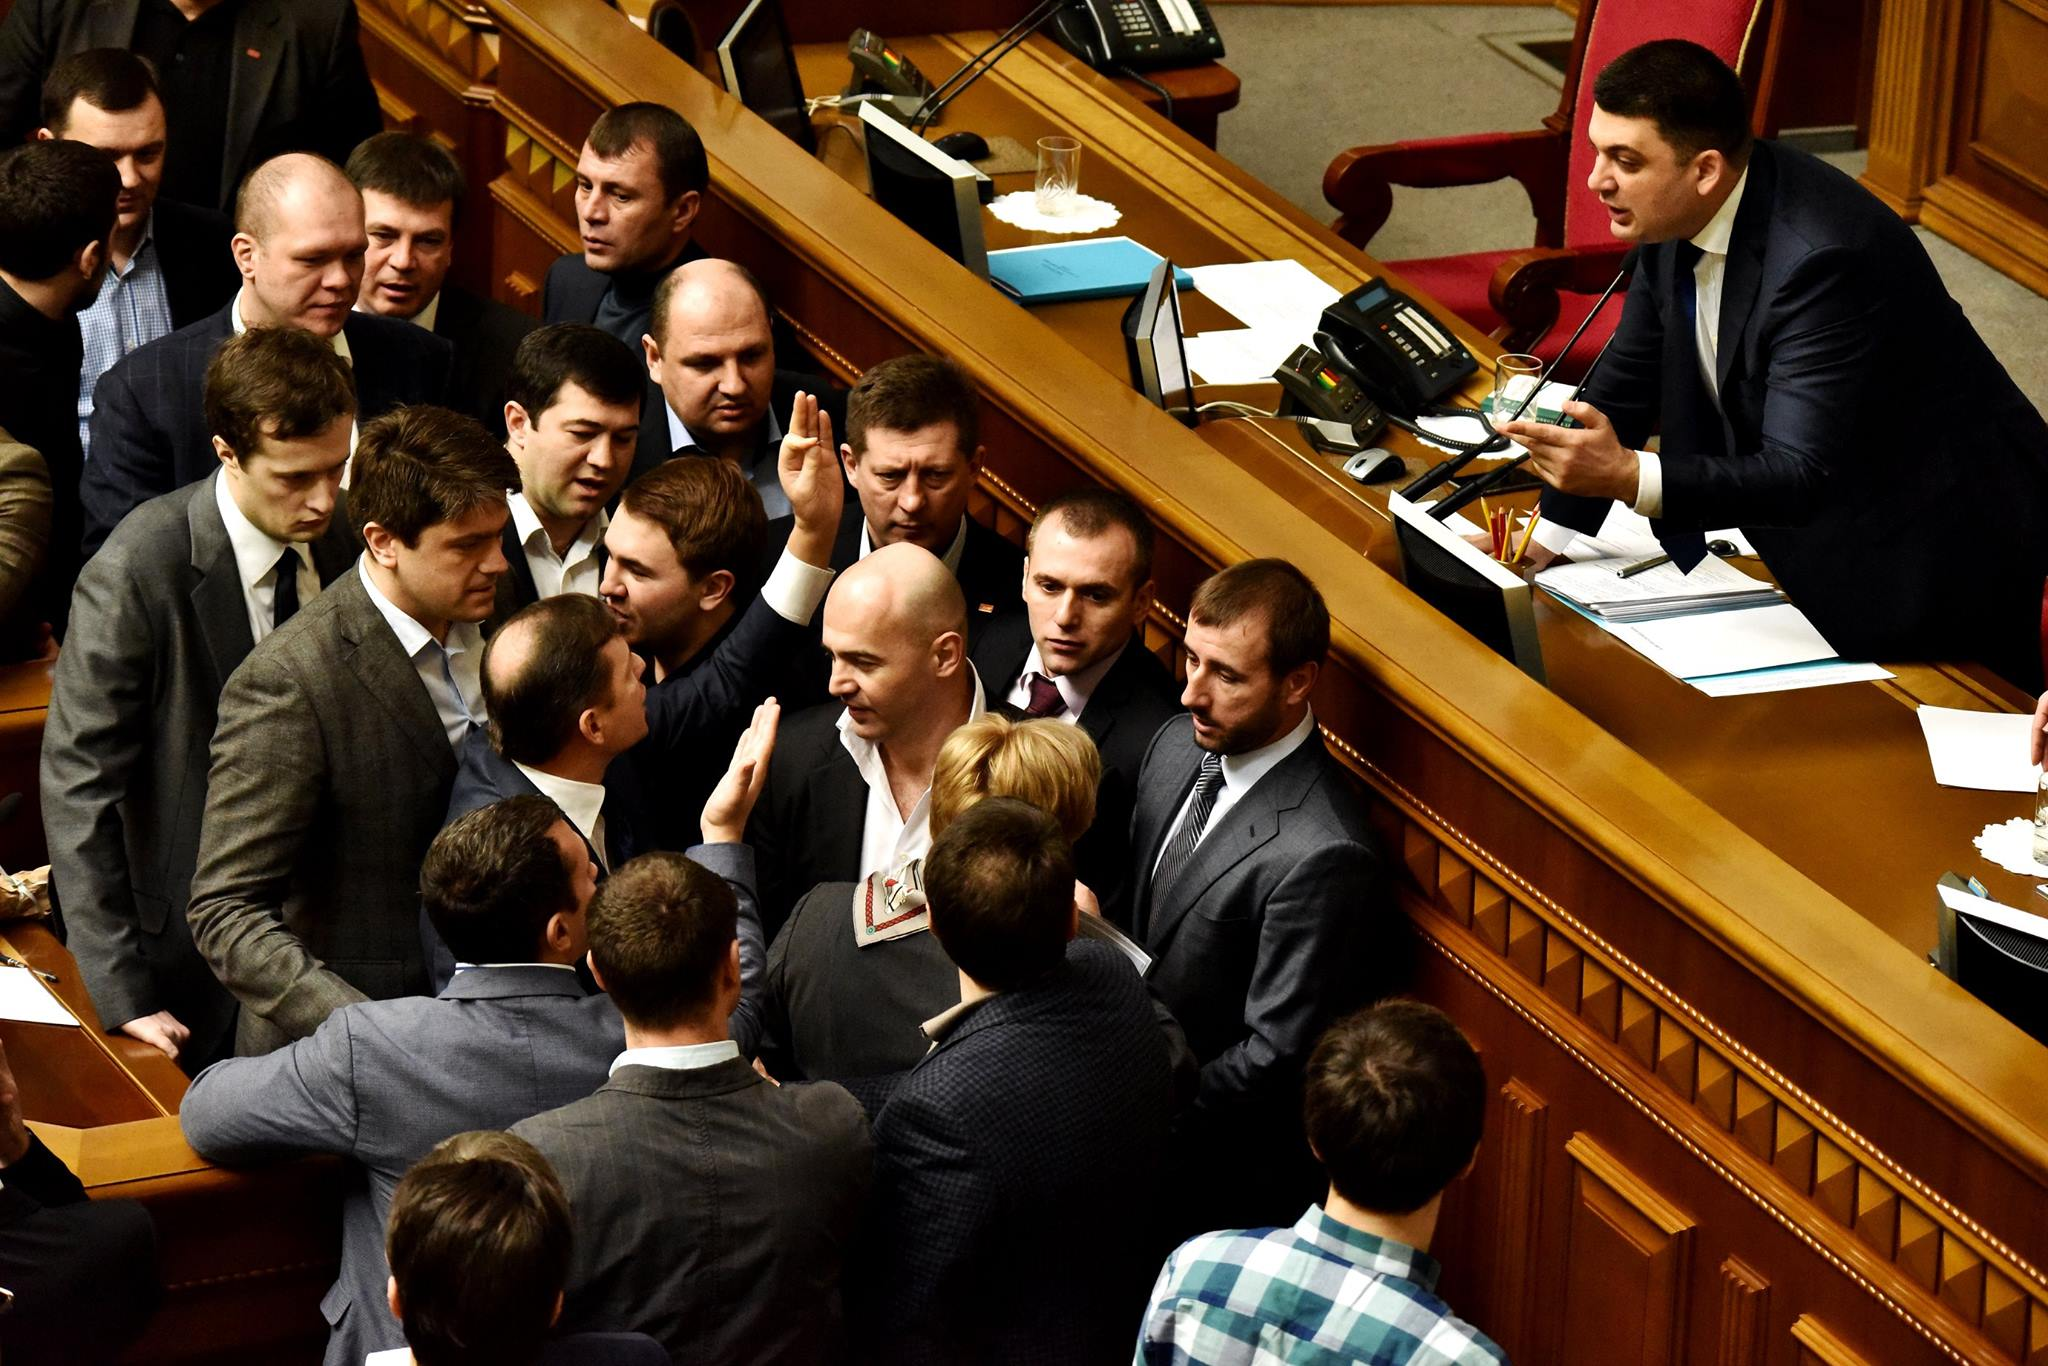 VoxUkraine Report on Voting Patterns in Rada: The Real Coalition and is Samopomich a Dissenter?